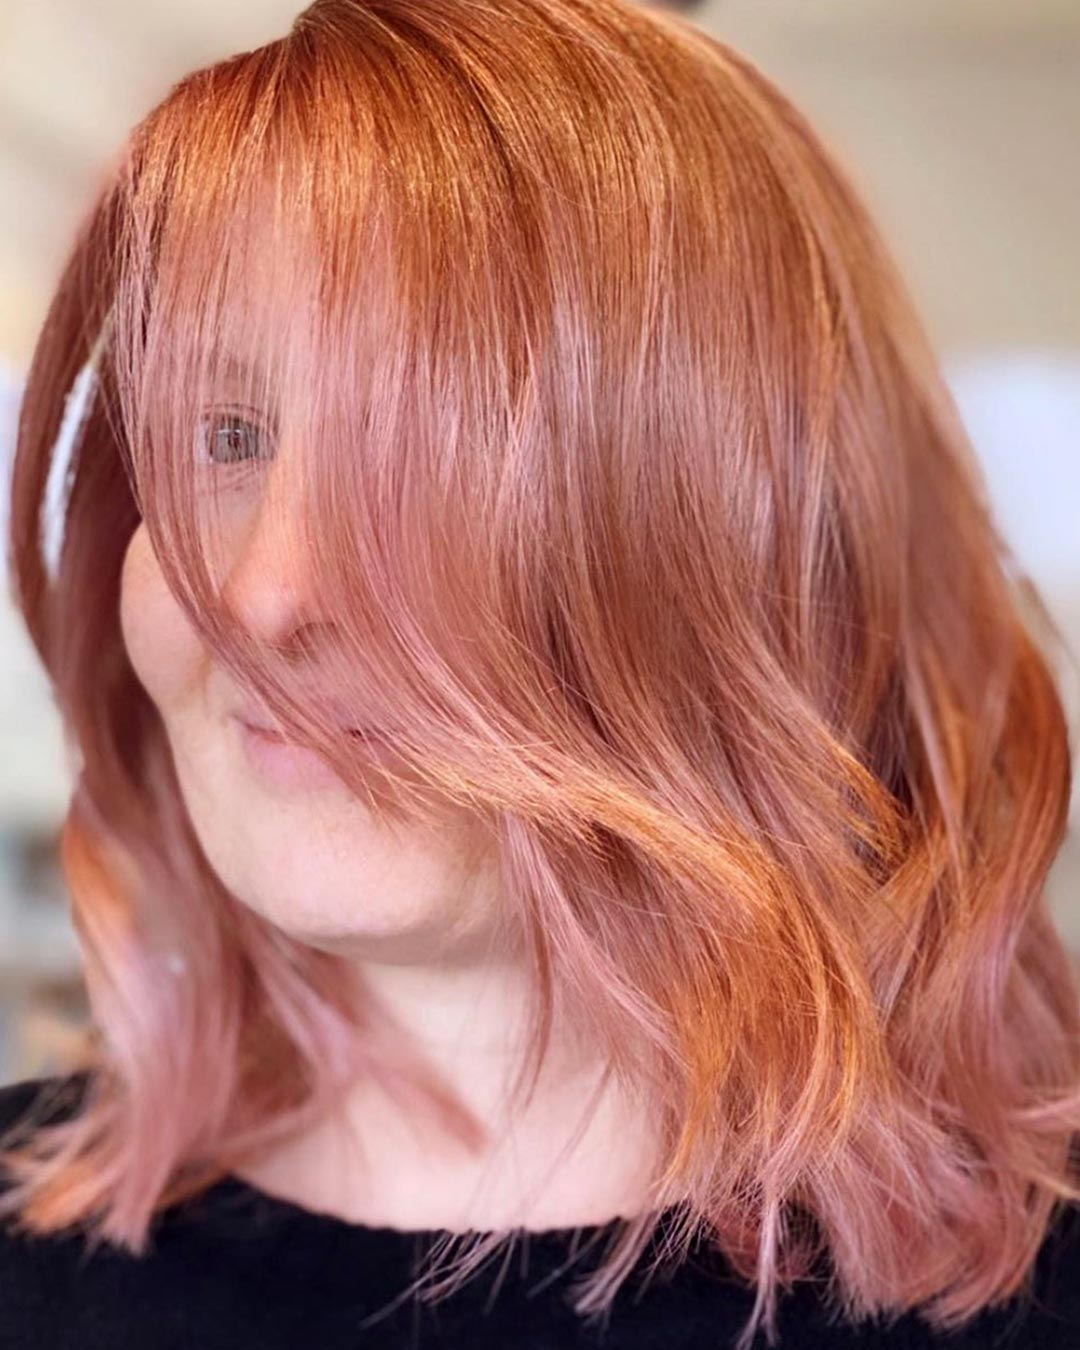 Rosy pink color hair cut and style created by Owner/Stylist, Sophie Davies